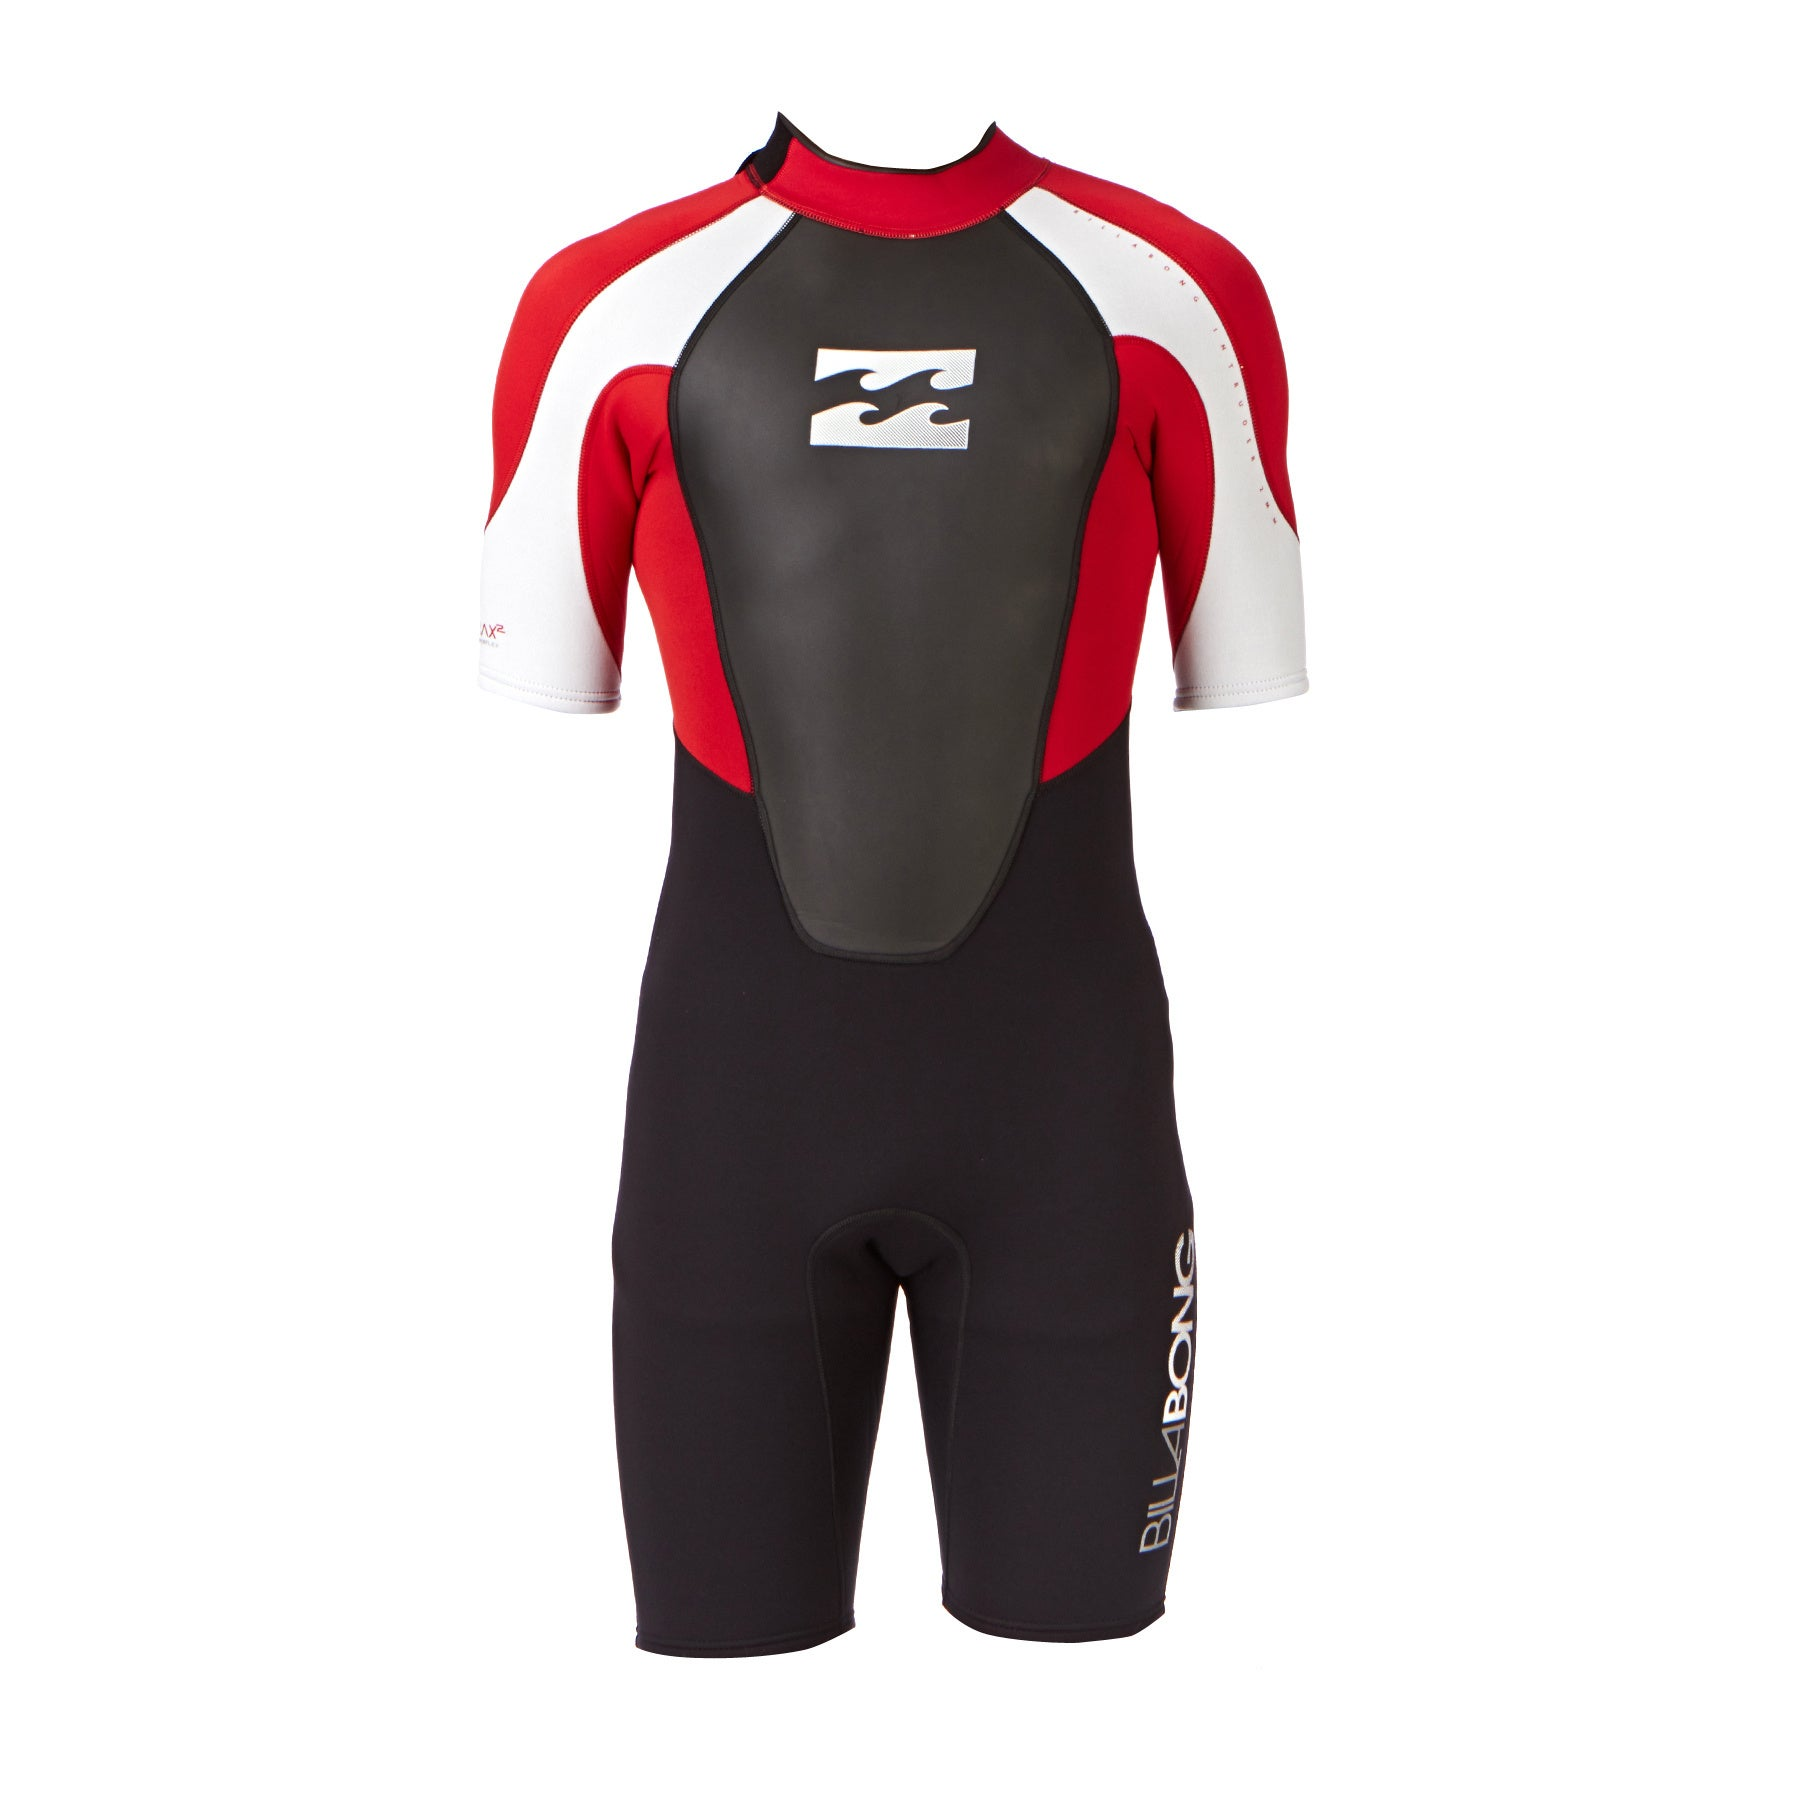 Billabong Intruder 2mm 2018 Back Zip Shorty Wetsuit